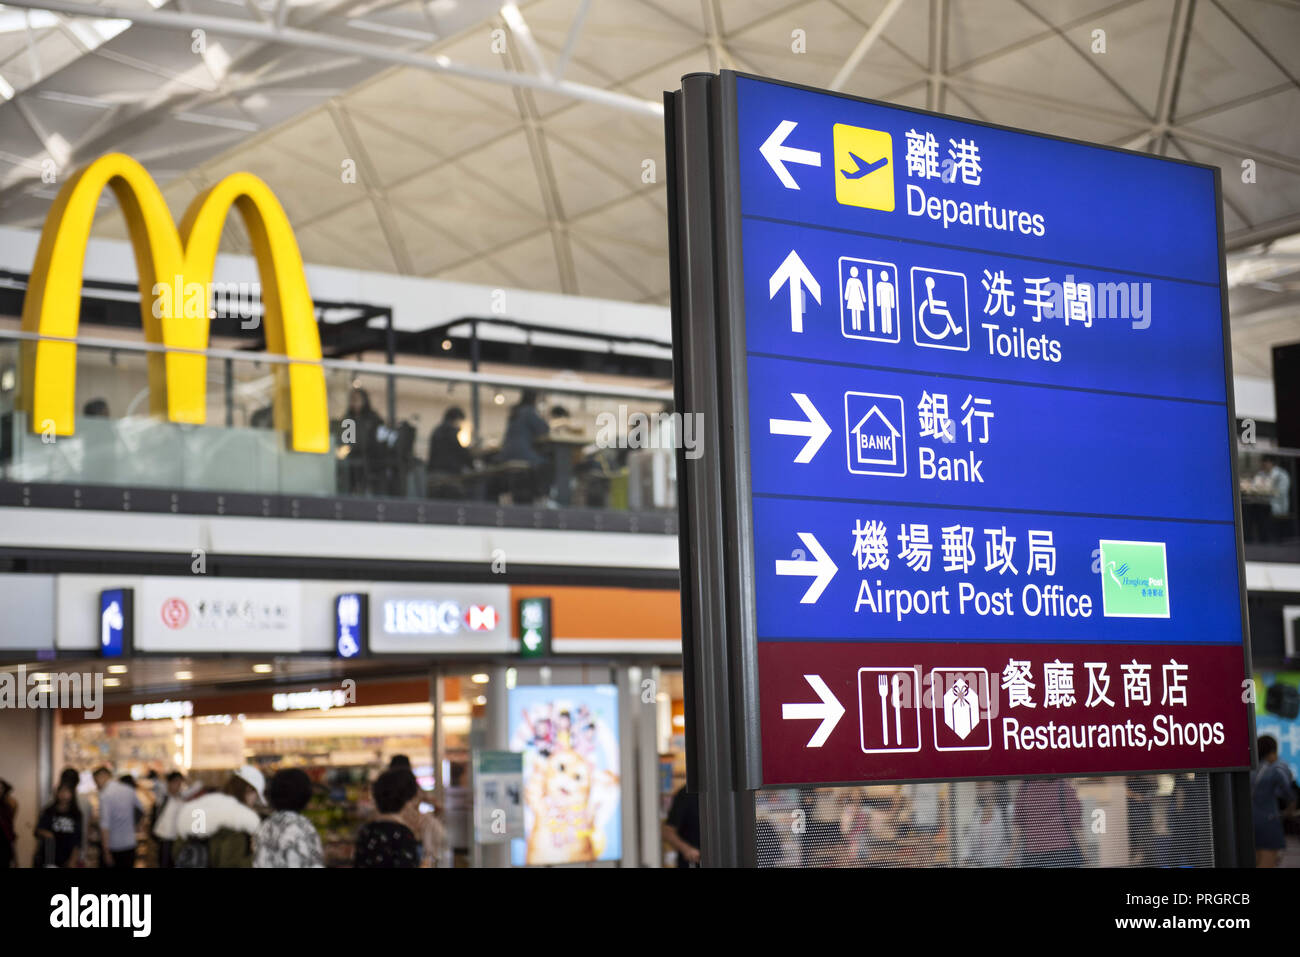 Chek Lap Kok island, Hong Kong. 28th Sep, 2018. A sign post is seen at Hong Kong terminal 1 airport giving direction where the departure hall, toilets, police office are located. At the back, a large McDonald's restaurant logo sign is visible. Credit: Miguel Candela/SOPA Images/ZUMA Wire/Alamy Live News - Stock Image